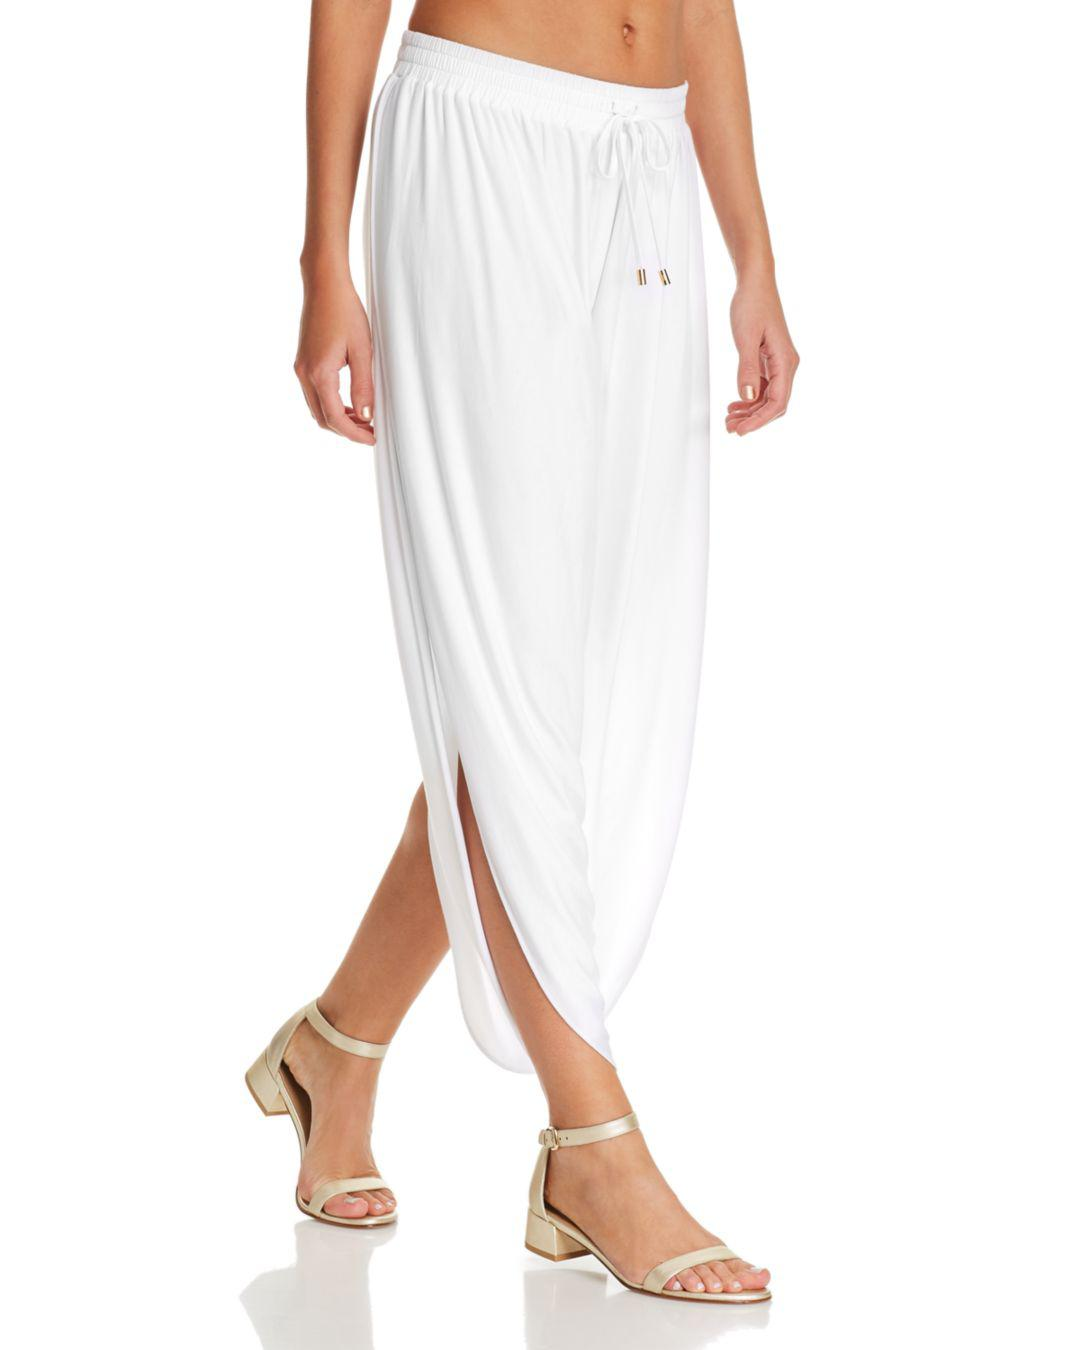 bfb327e1bfa Laundry by Shelli Segal. Women s White Solid Draped Swim Cover-up Trousers